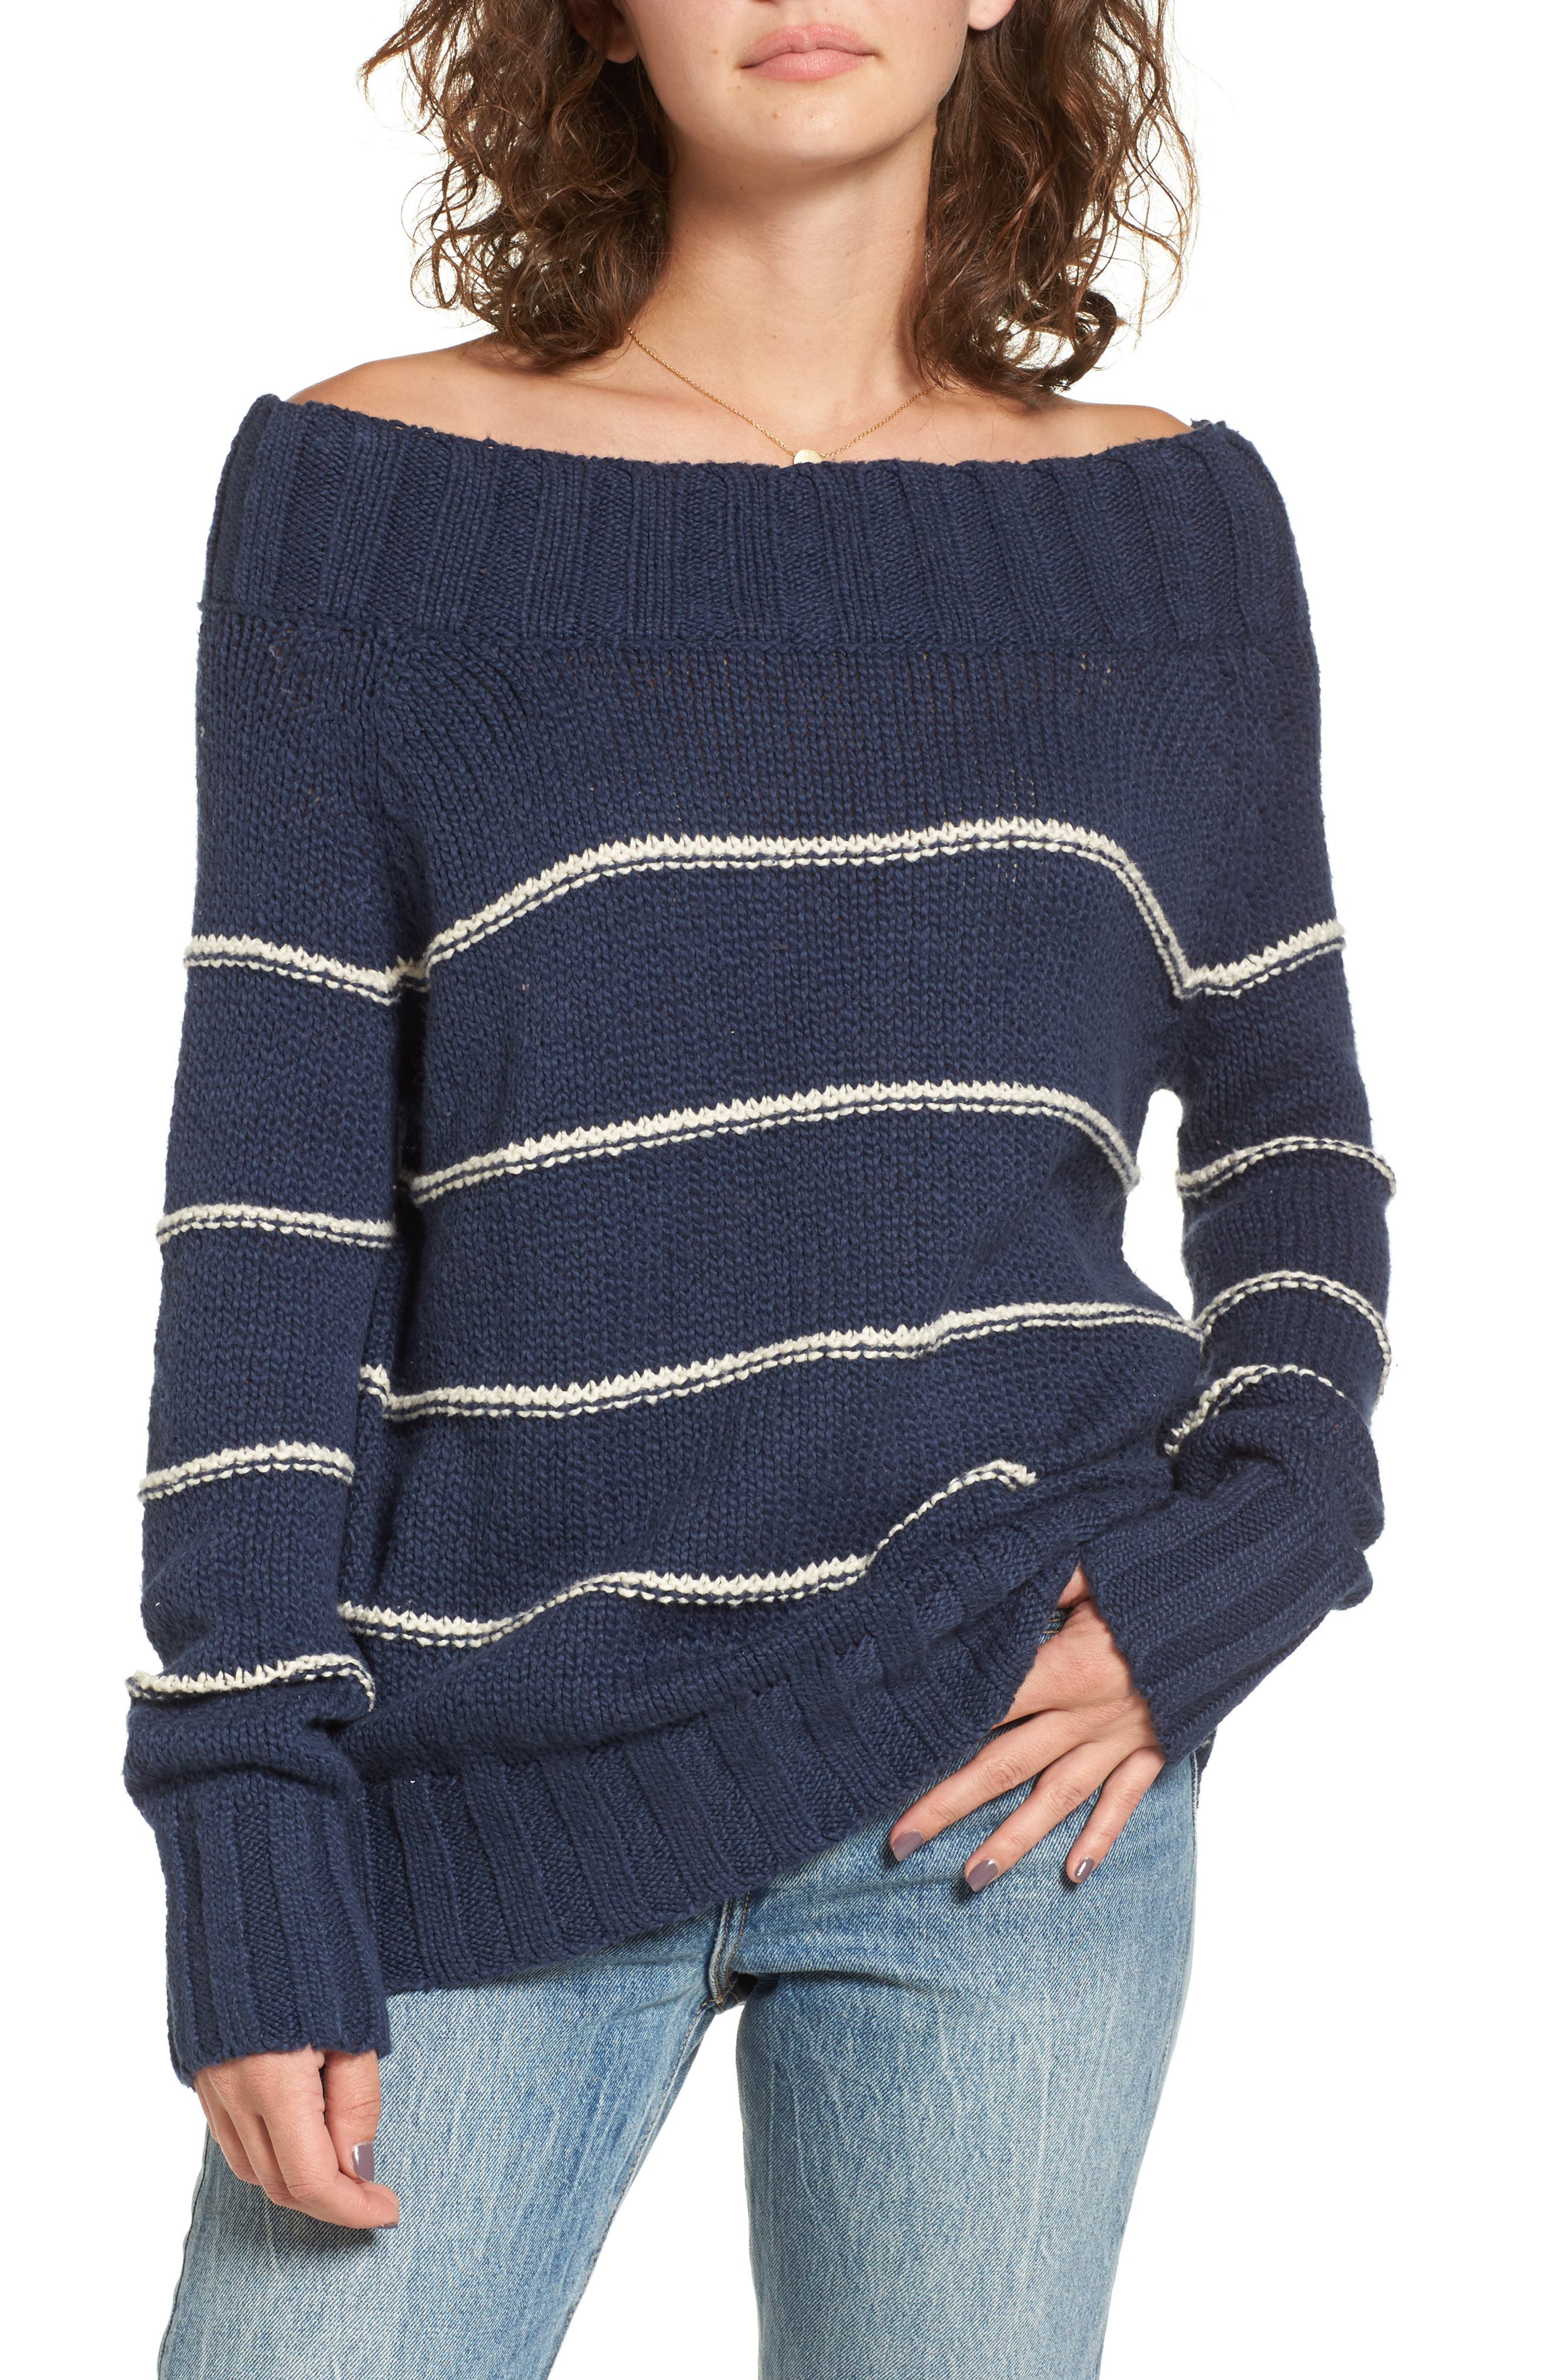 Snuggle Down Off the Shoulder Sweater,                             Main thumbnail 1, color,                             400